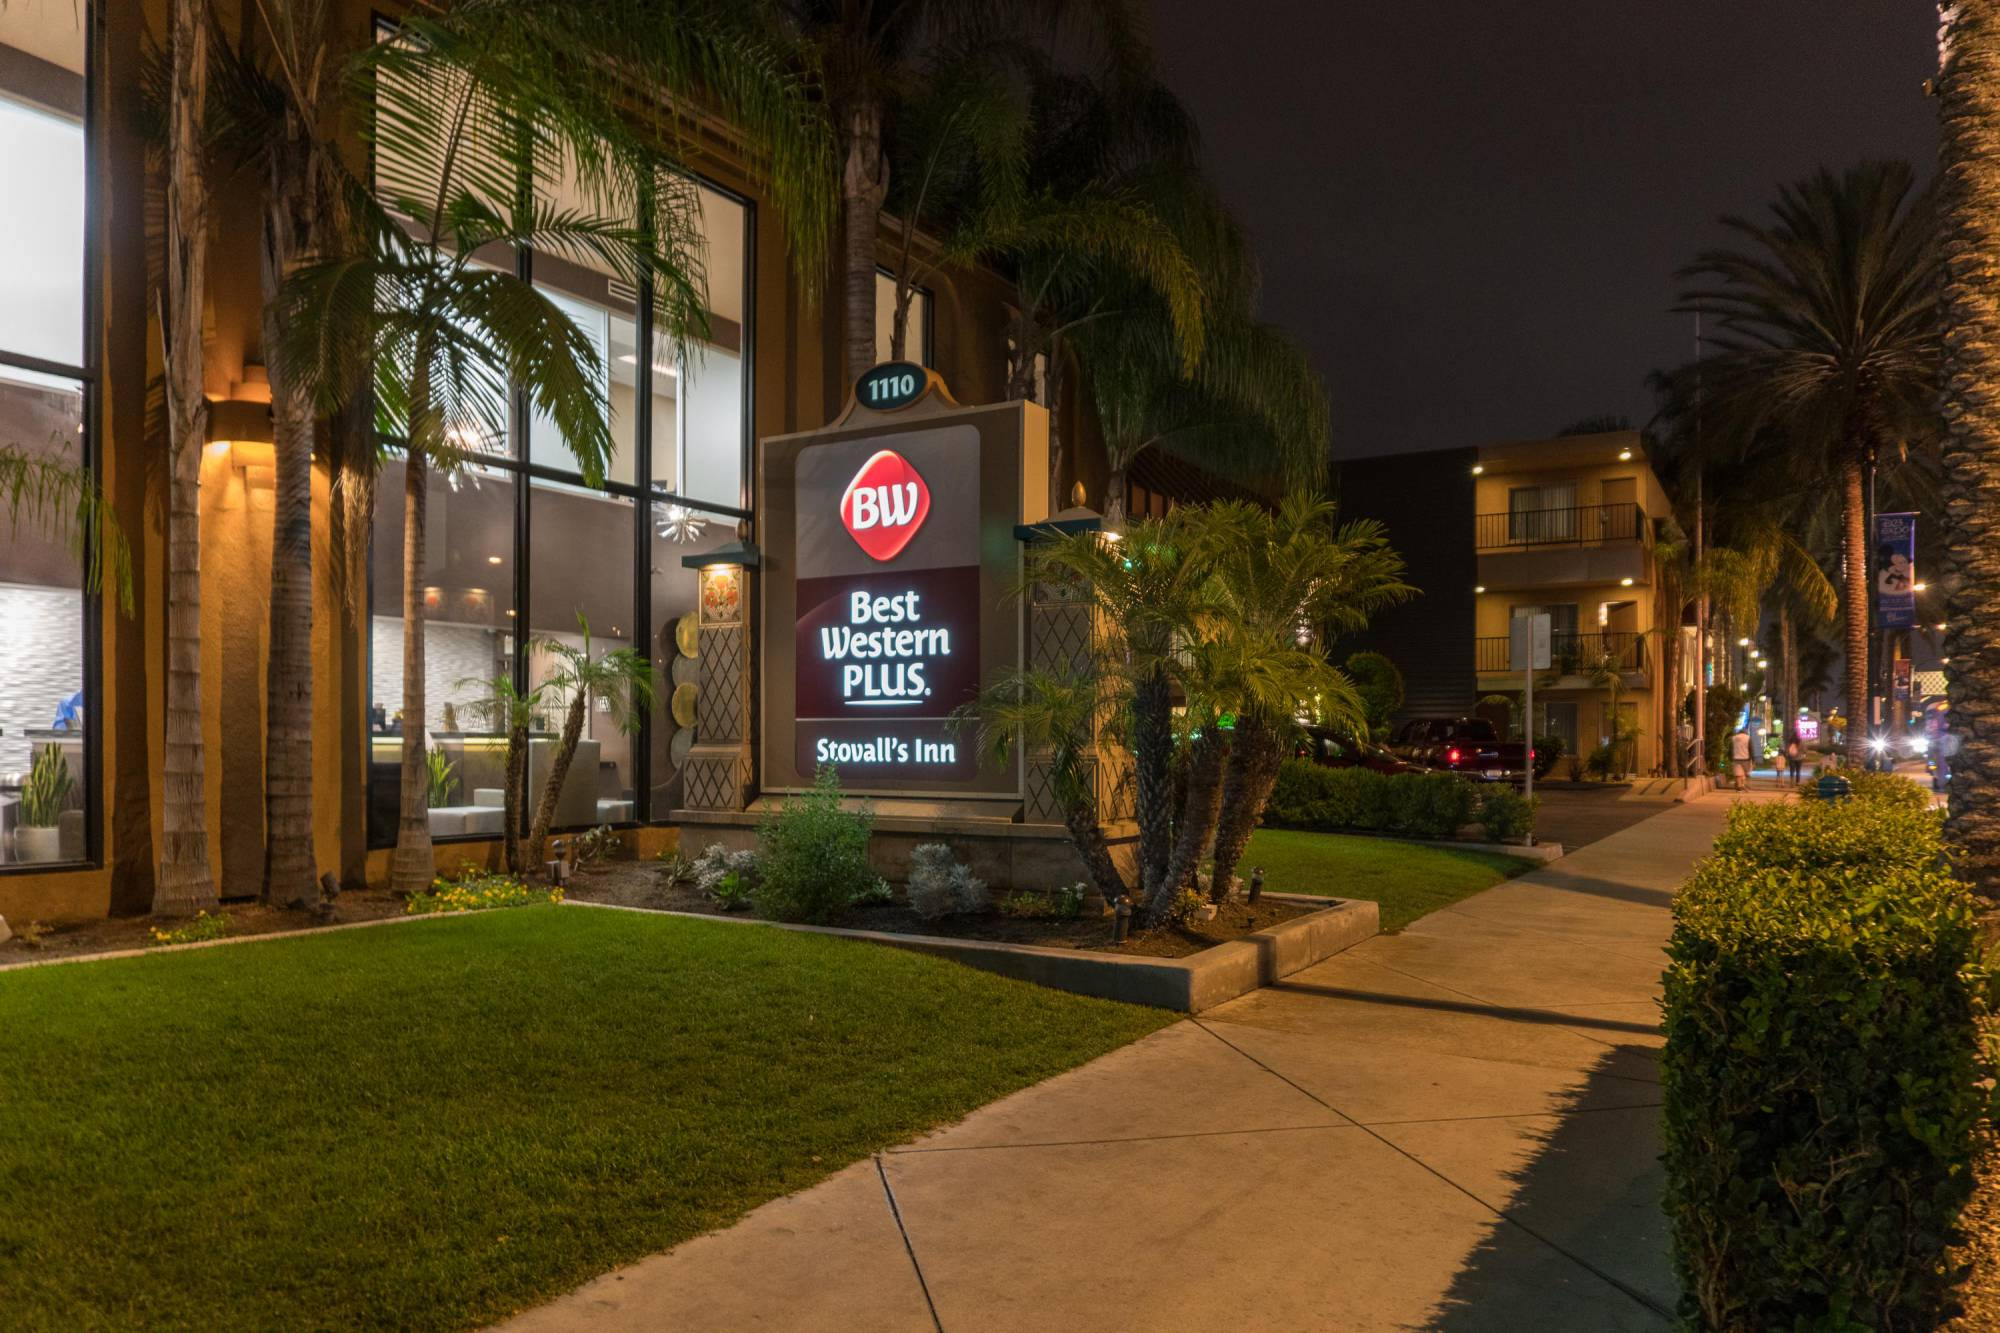 Enjoy the convenience of the Disneyland Good Neighbor Hotel - the Best Western Plus Stovall's Inn | PassPorter.com